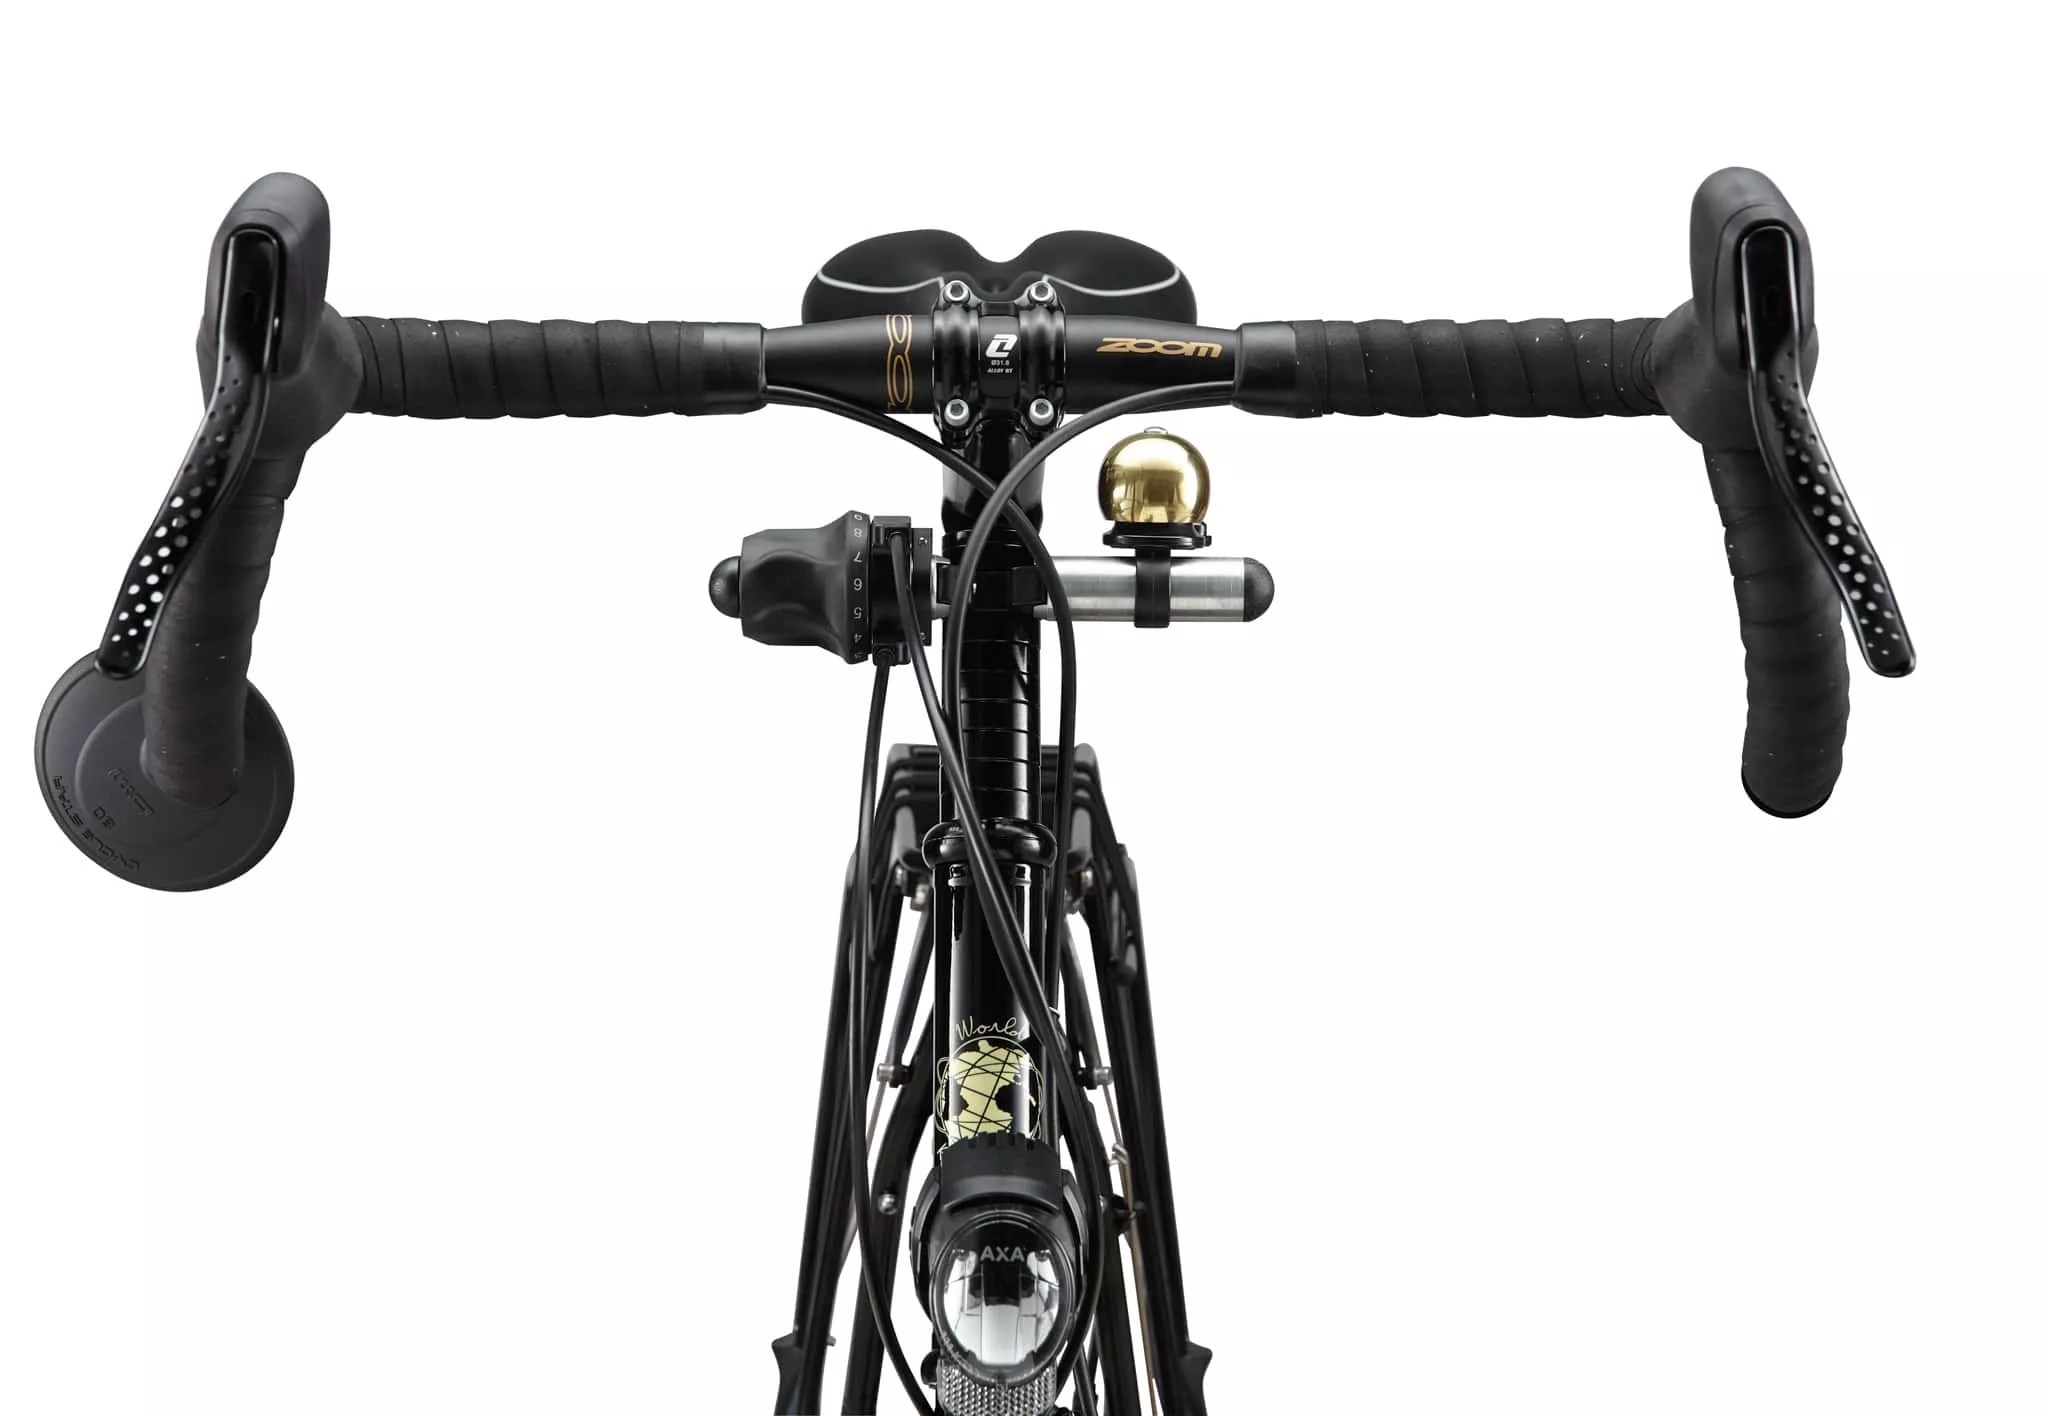 63f7d4c2237 ... developed to get our bodies a little lower, or at least to give us the  option of being lower. This would reduce wind resistance. But for touring  bikes, ...